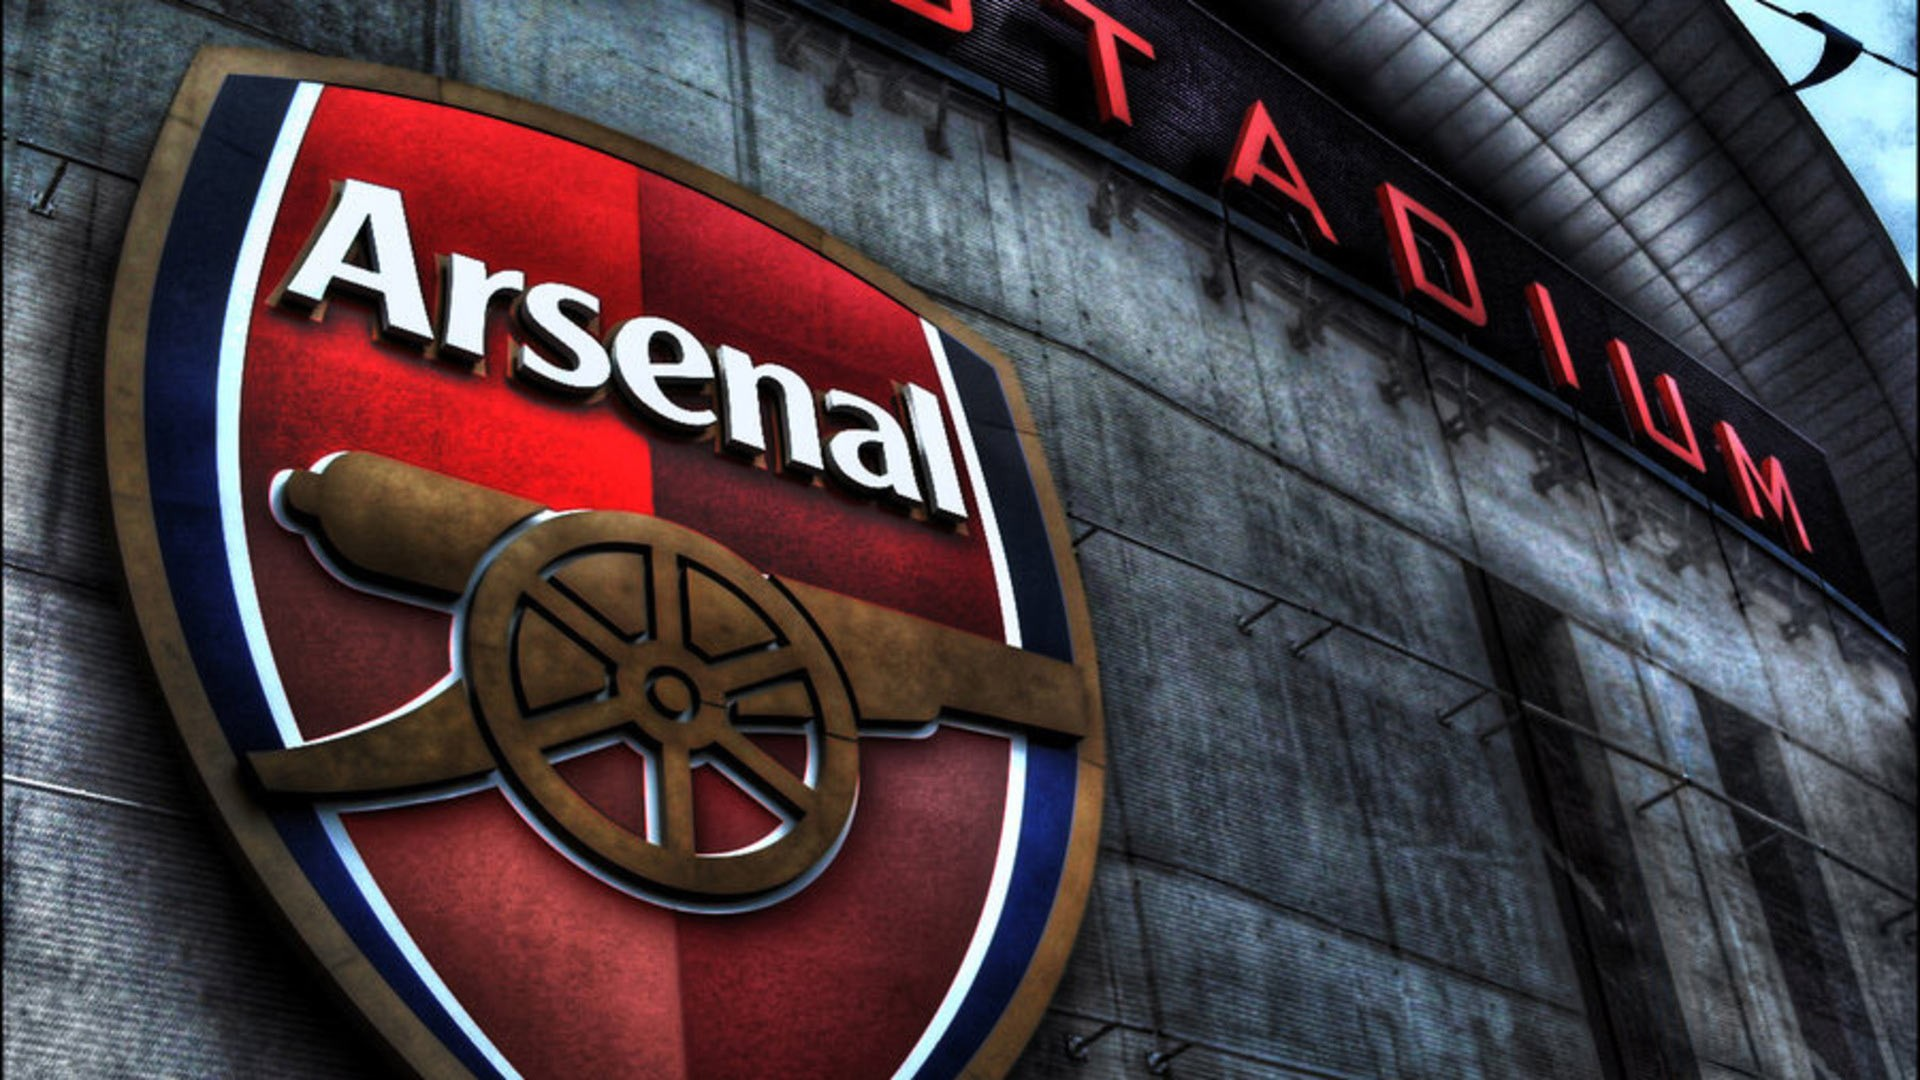 Pics Photos   Arsenal Logo Wallpaper Mobile Football Hd 1920x1080